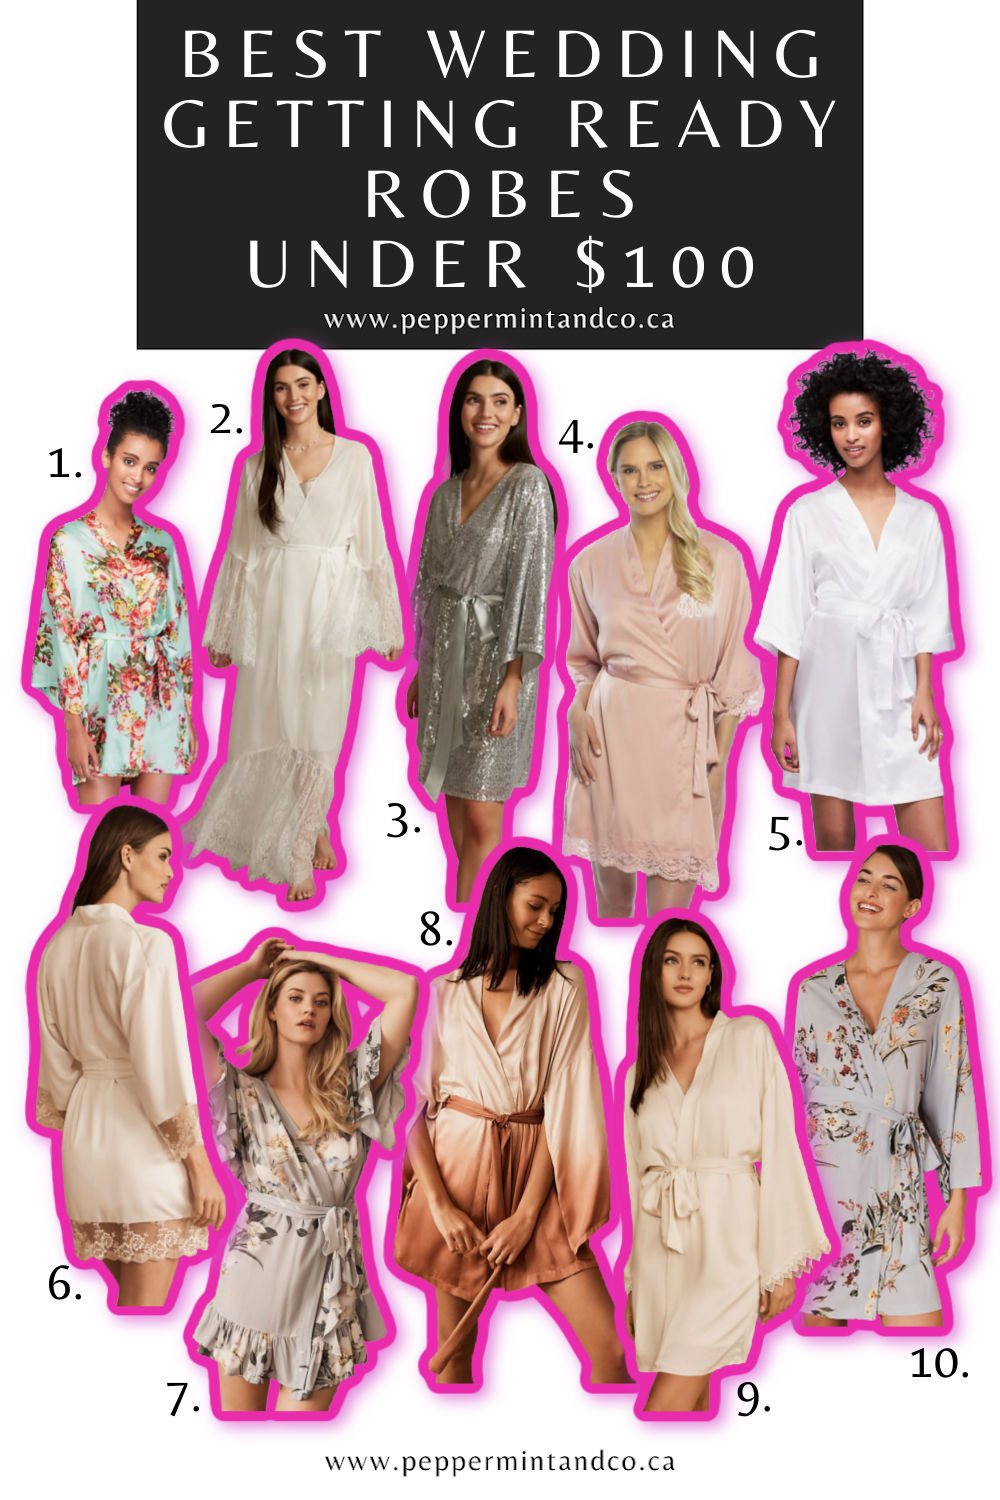 Wedding Getting Ready Robes Under $100. Part 1.